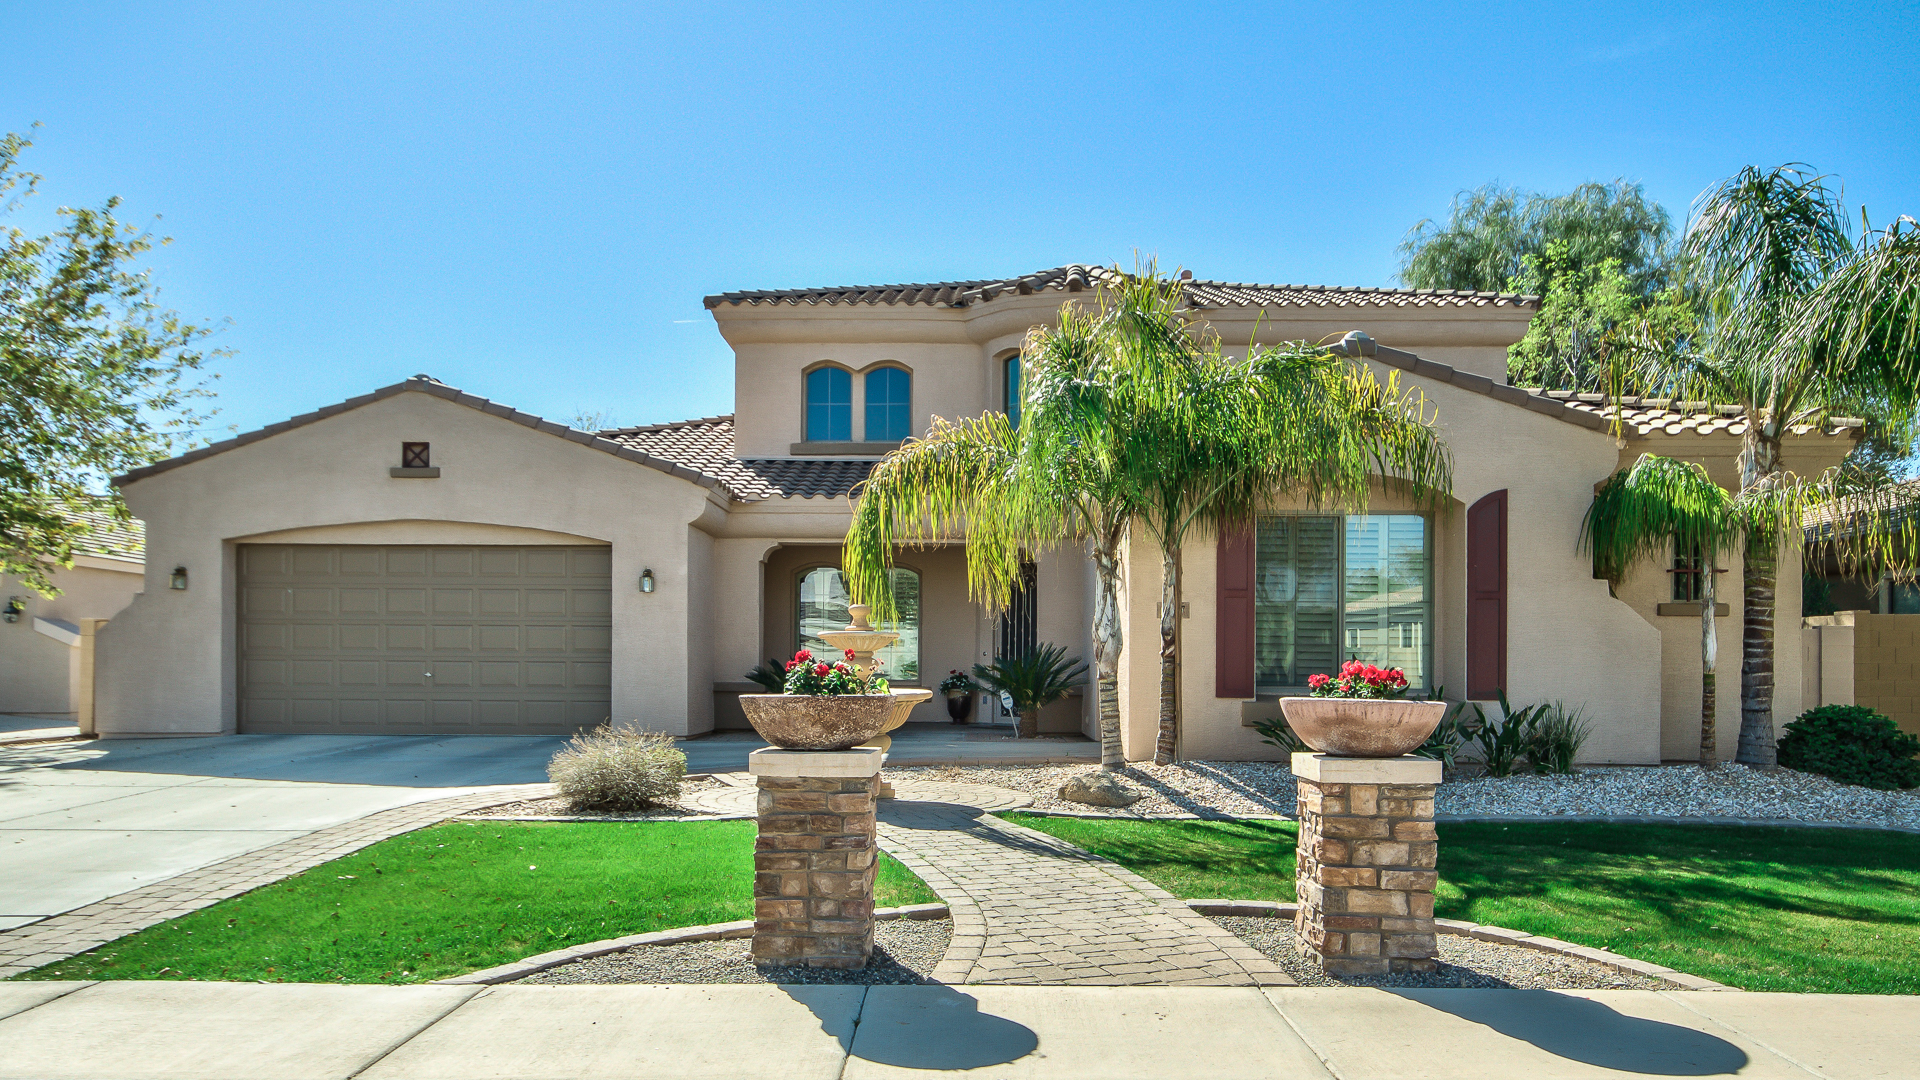 Chandler Home for Sale with Pool, 437 E Tonto Pl, Chandler, 85249